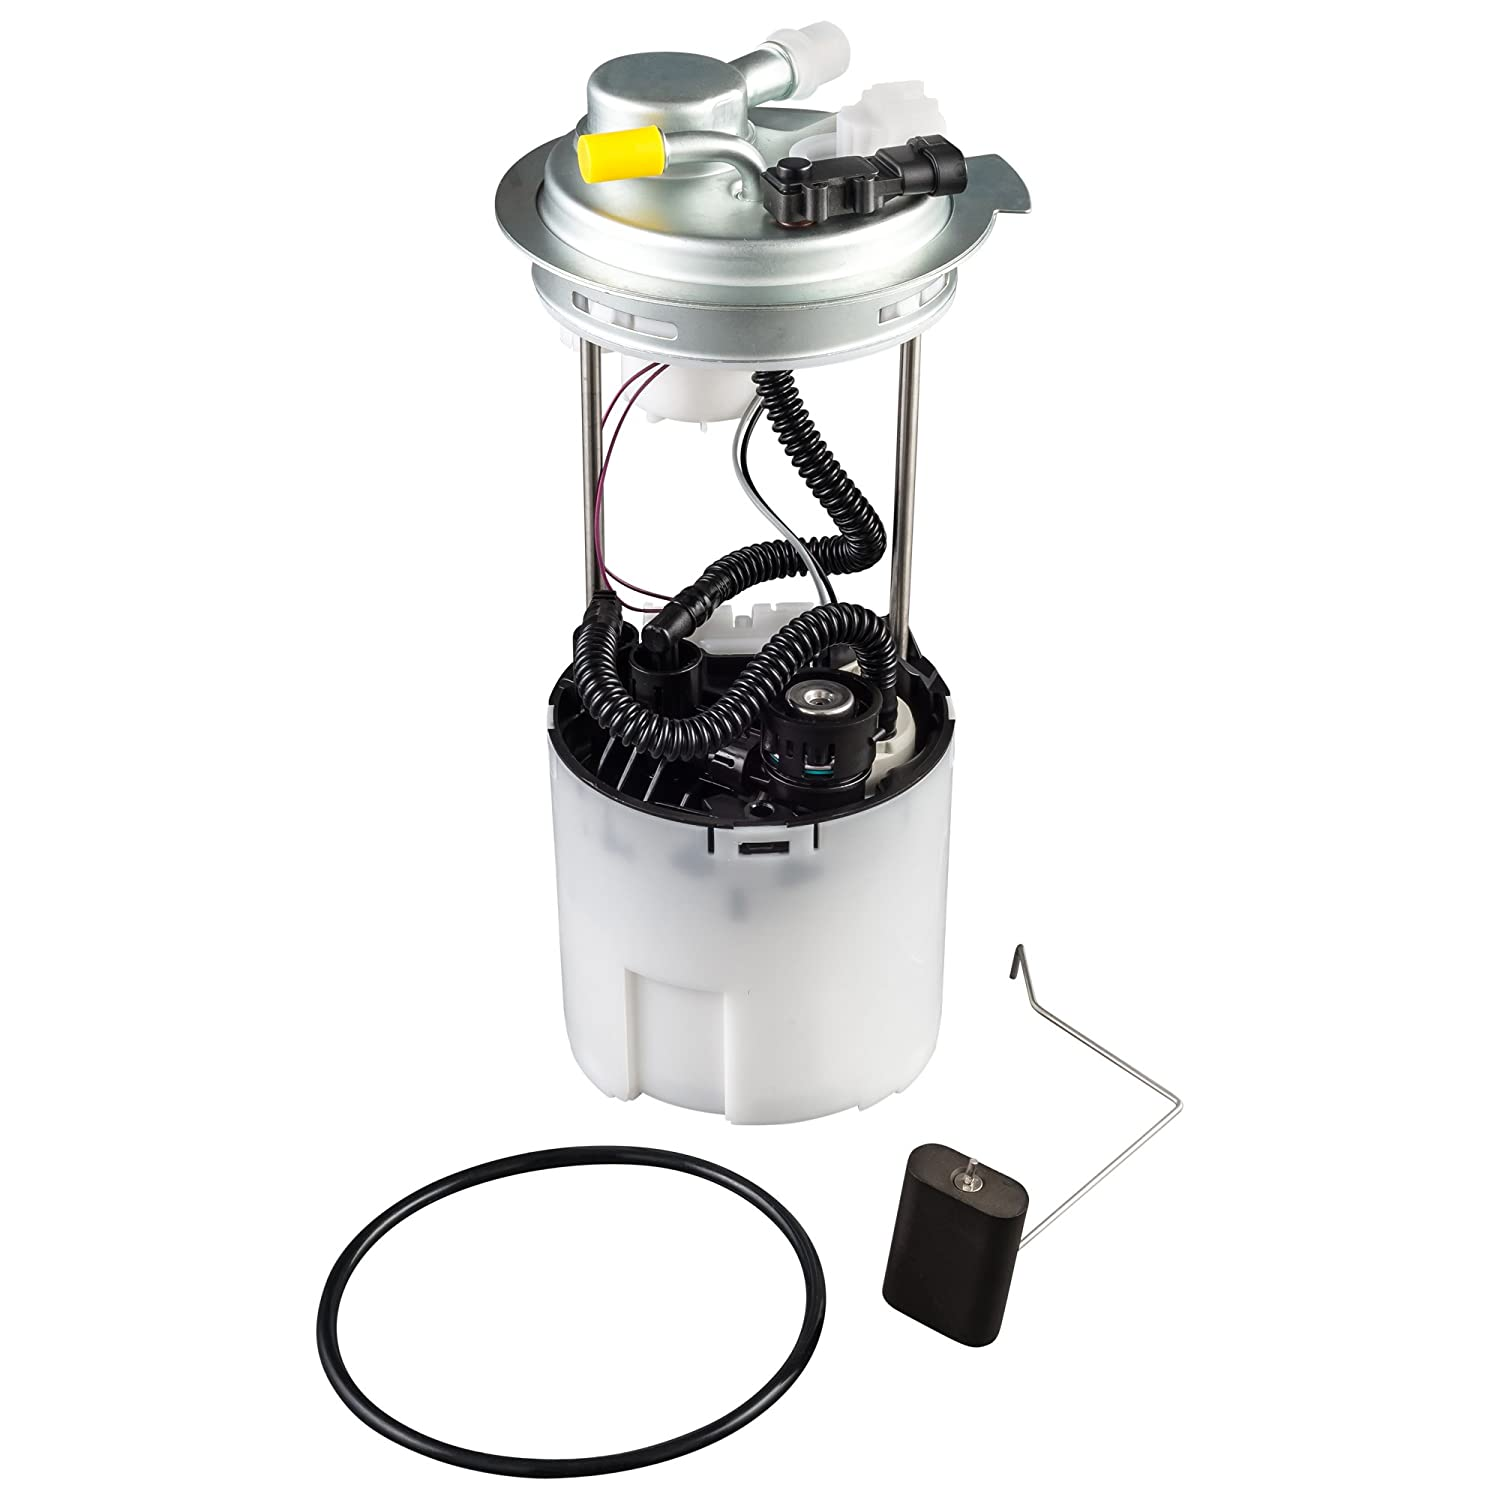 Fuel Pump for Chevy Colorado GMC Canyon Isuzu I-280 I-290 I-350 Fits  Chevy Colorado Fuel Pump Wiring Diagram on 2000 chevy blazer wiring diagram, 2007 chevy colorado oil filter, 2007 chevy colorado radiator, 2007 chevy colorado brake switch, 2007 chevy colorado brake system, 2007 chevy colorado suspension, 2001 chevy lumina wiring diagram, 2007 chevy colorado drive line diagram, 2007 chevy colorado cylinder head, 2007 chevy colorado thermostat replacement, 2007 chevy colorado fuel tank, 2003 chevy trailblazer wiring diagram, 2007 chevy colorado dimensions, 2007 chevy colorado fuse diagram, 2007 chevy colorado radio, 2007 chevy colorado sensor diagram, chevy wiring harness diagram, 2007 chevy colorado exhaust, 2007 chevy colorado hvac diagram,